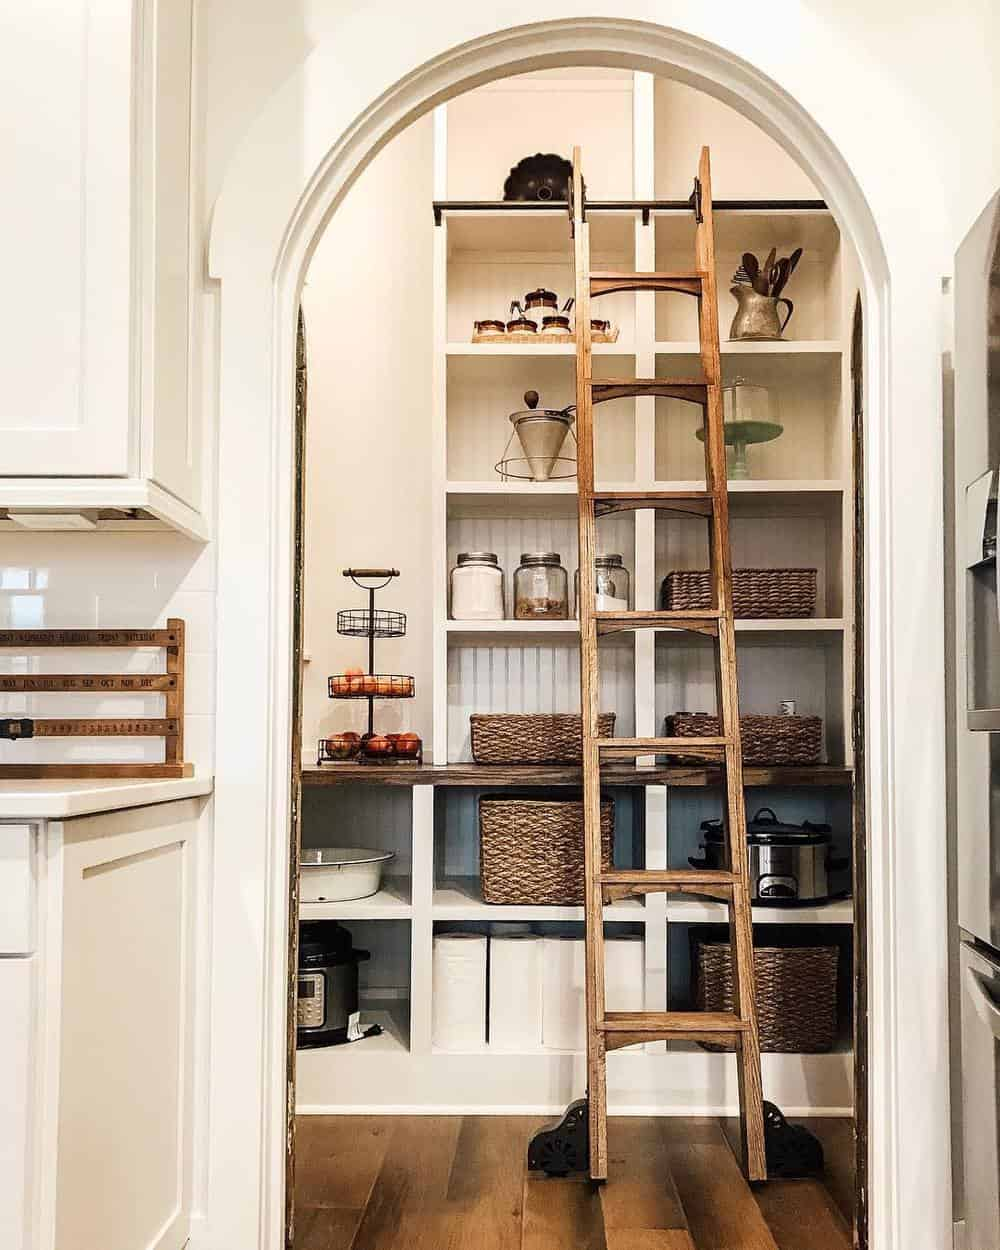 Best Ideas to Decorate Your Modern Country Kitchen - Add a Sliding Library Ladder to Your Kitchen